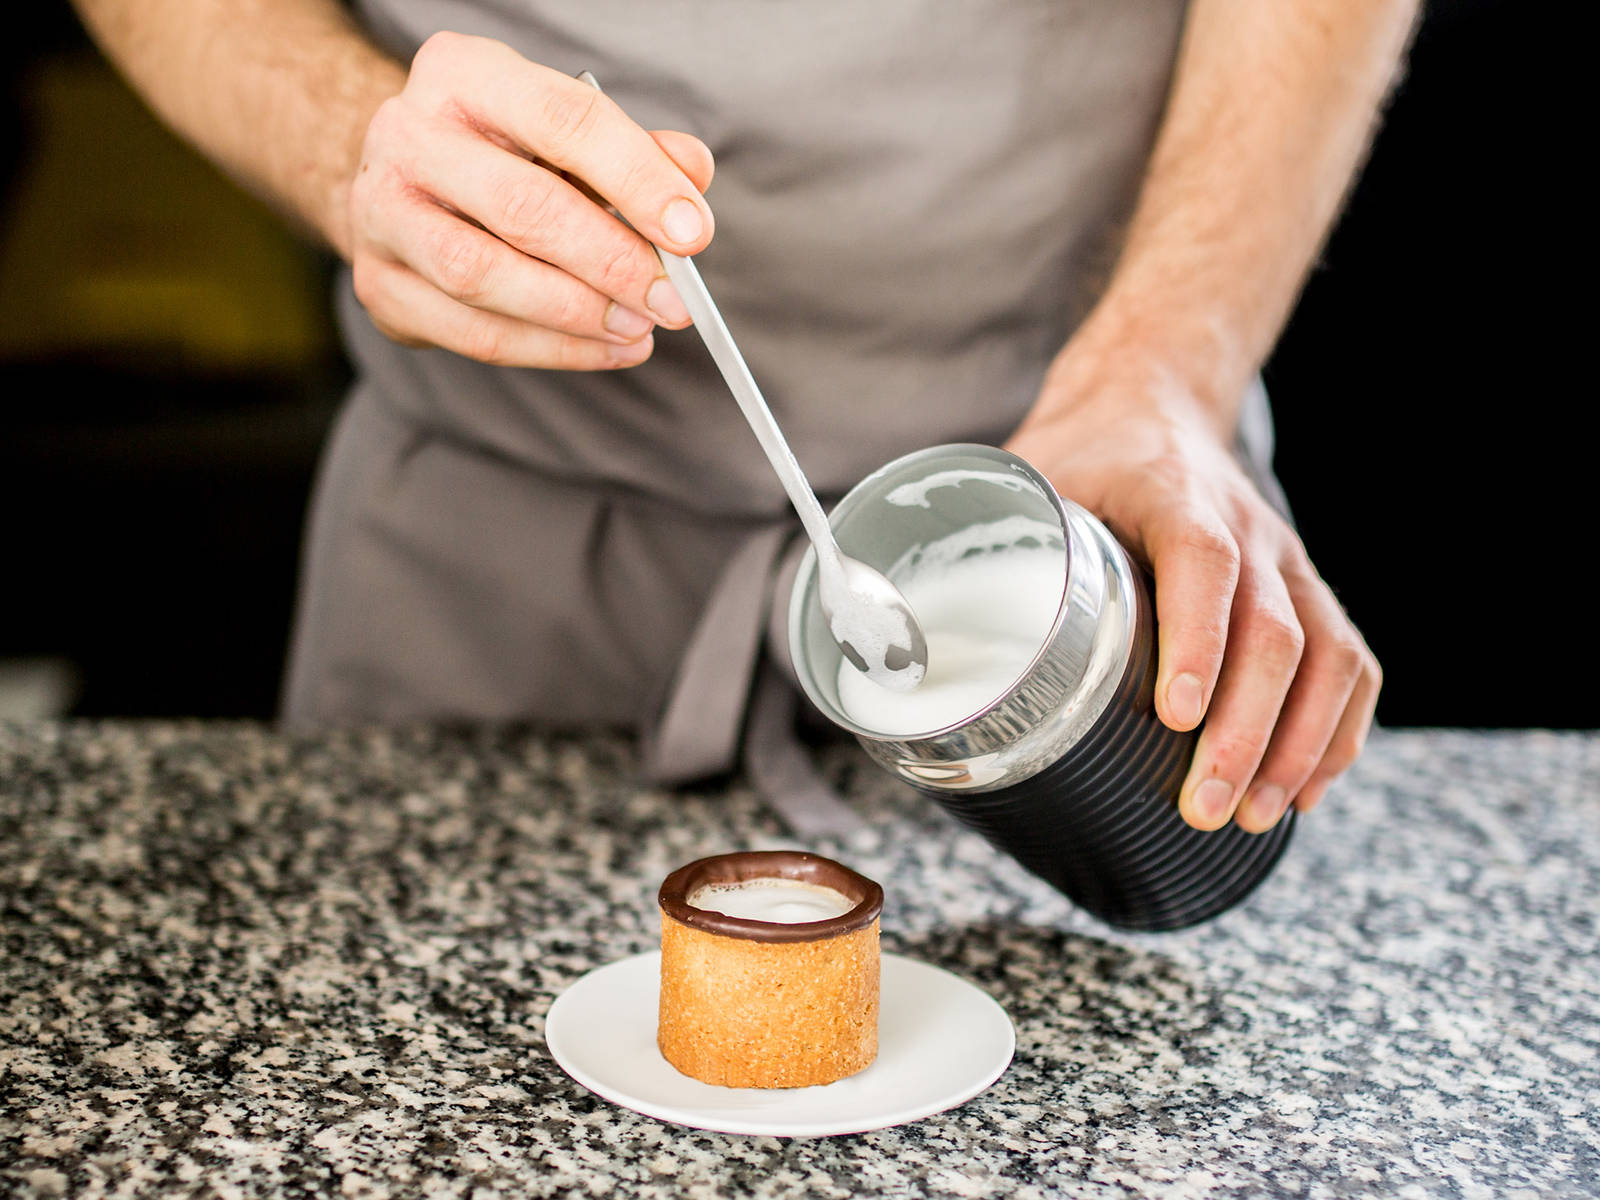 Once chocolate has set, the cups are ready to be filled with espresso. If you like, top the espresso with milk foam. Enjoy!